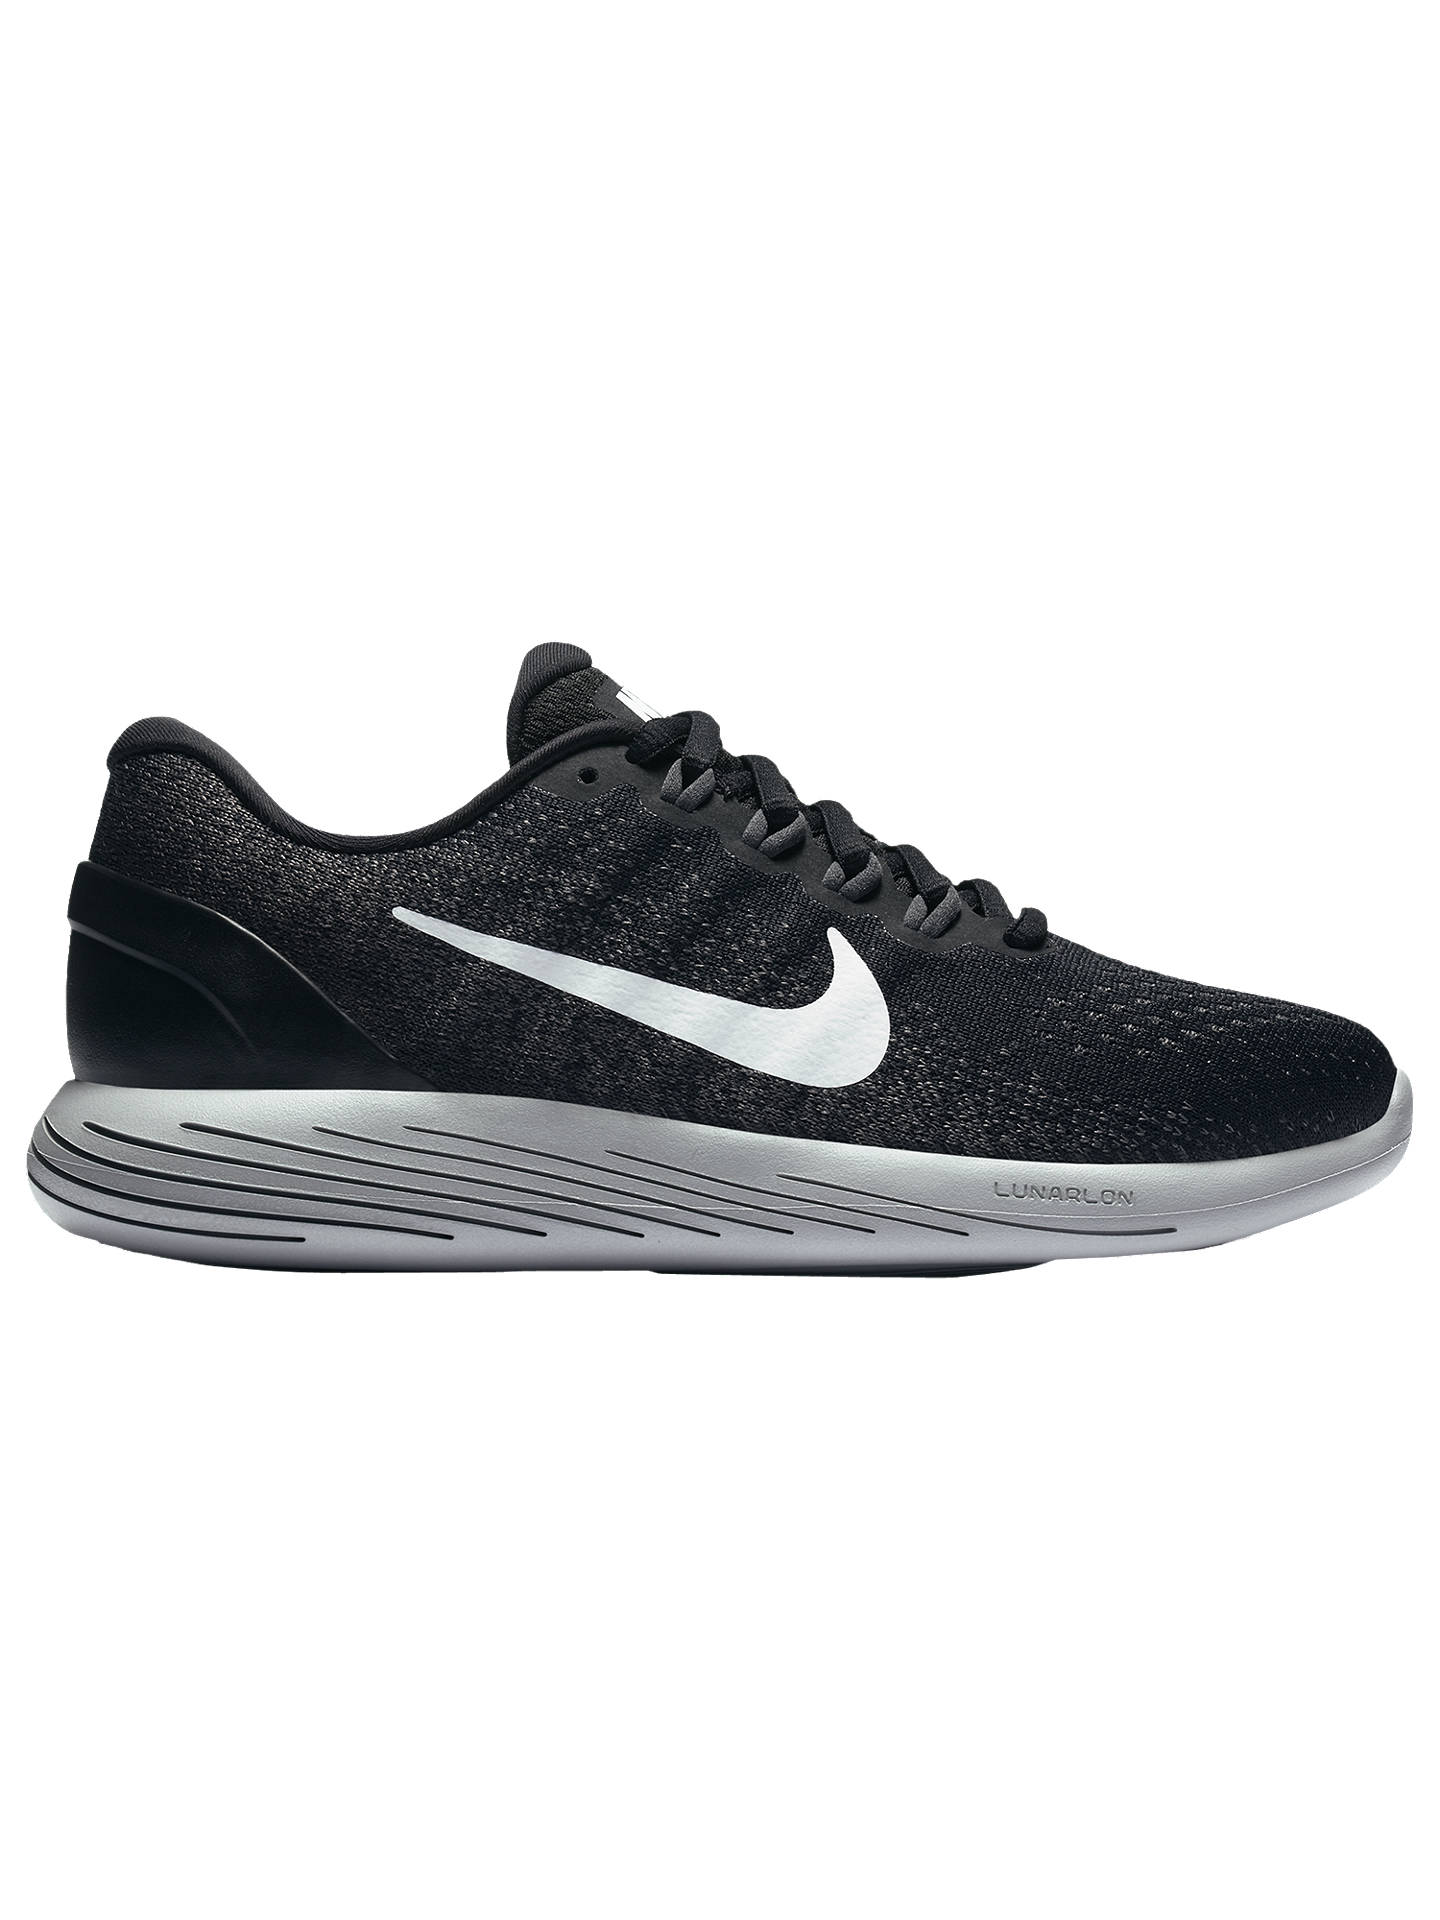 6a01c7b72c1 ... ebay buynike lunarglide 9 womens running shoes black white grey 4  online at be8e6 04f31